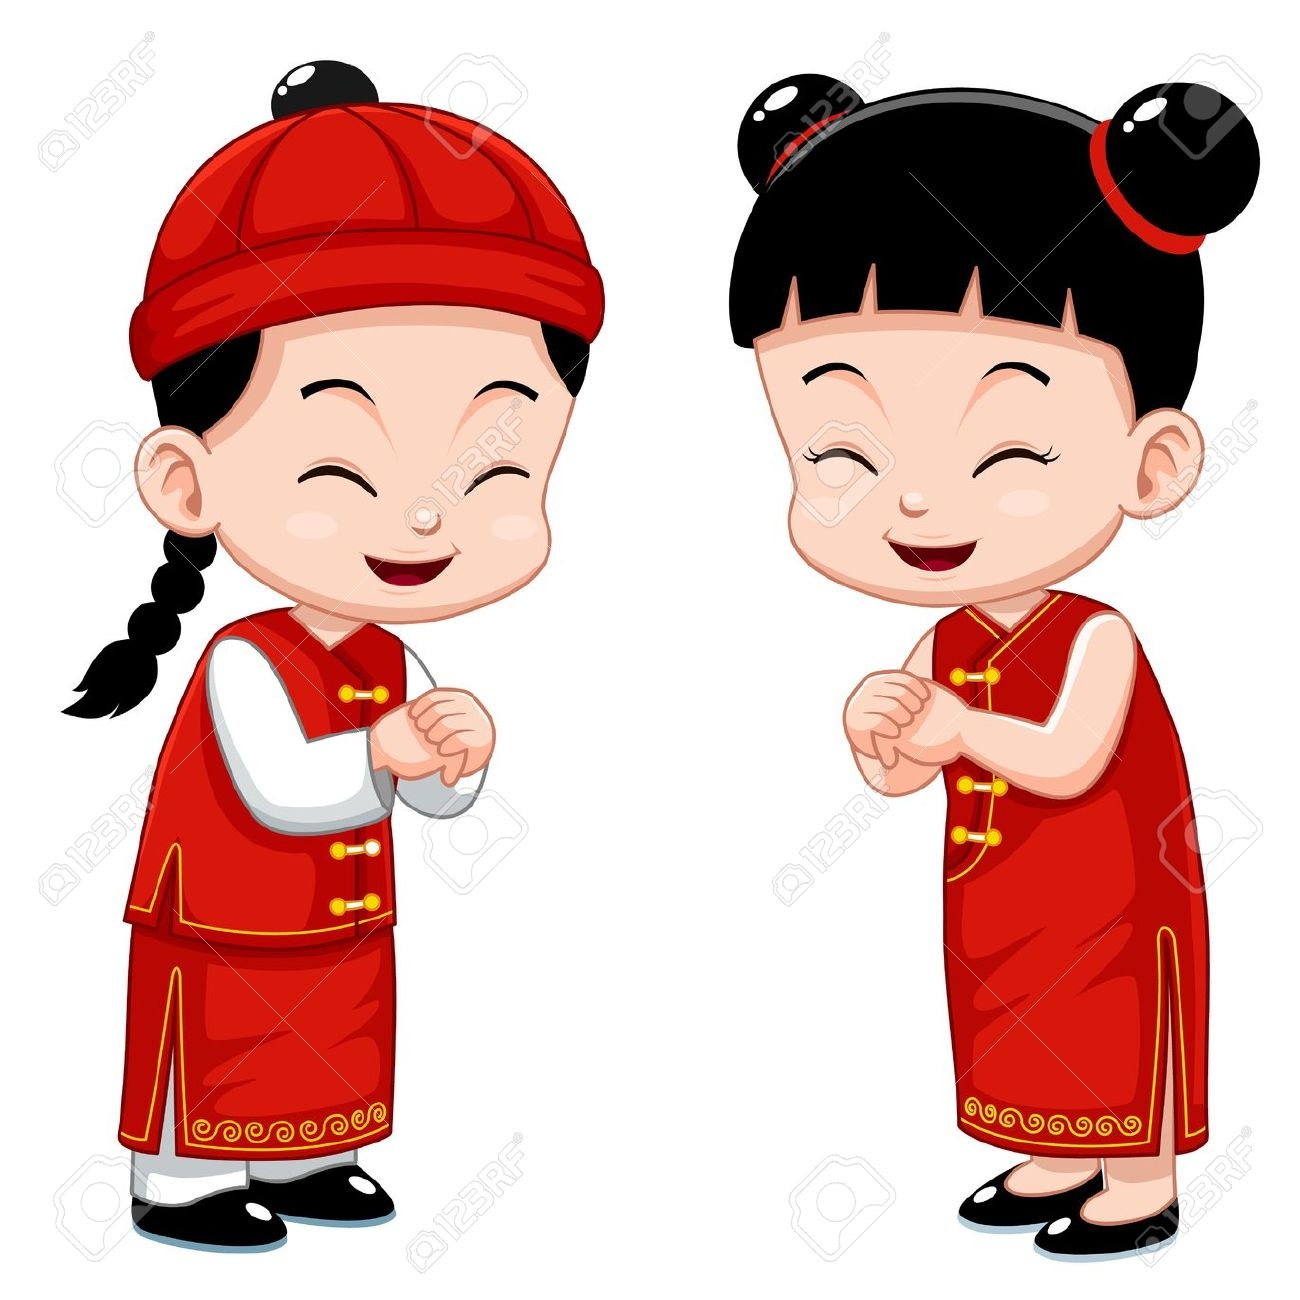 China clipart clip transparent stock China clipart Elegant Chinese cliparts Clipart Collection » Clipart ... clip transparent stock